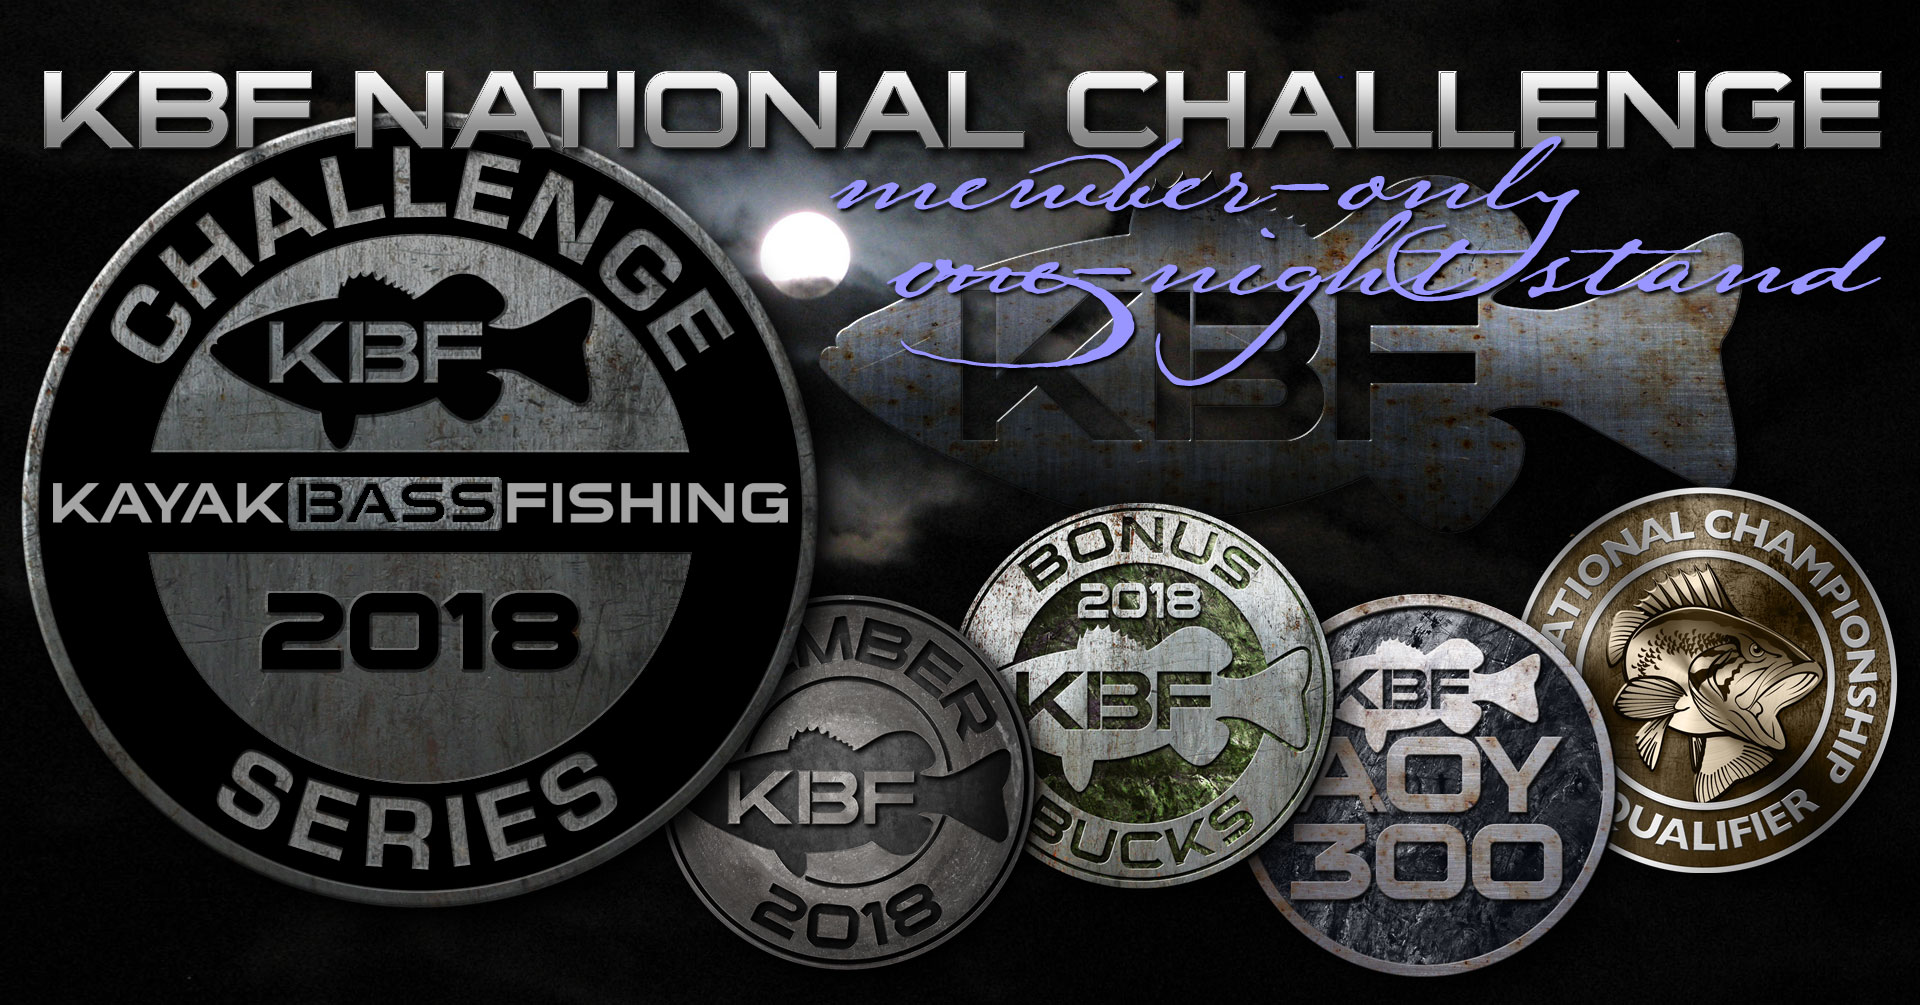 2018 KBF One Night Stand Challenge Series